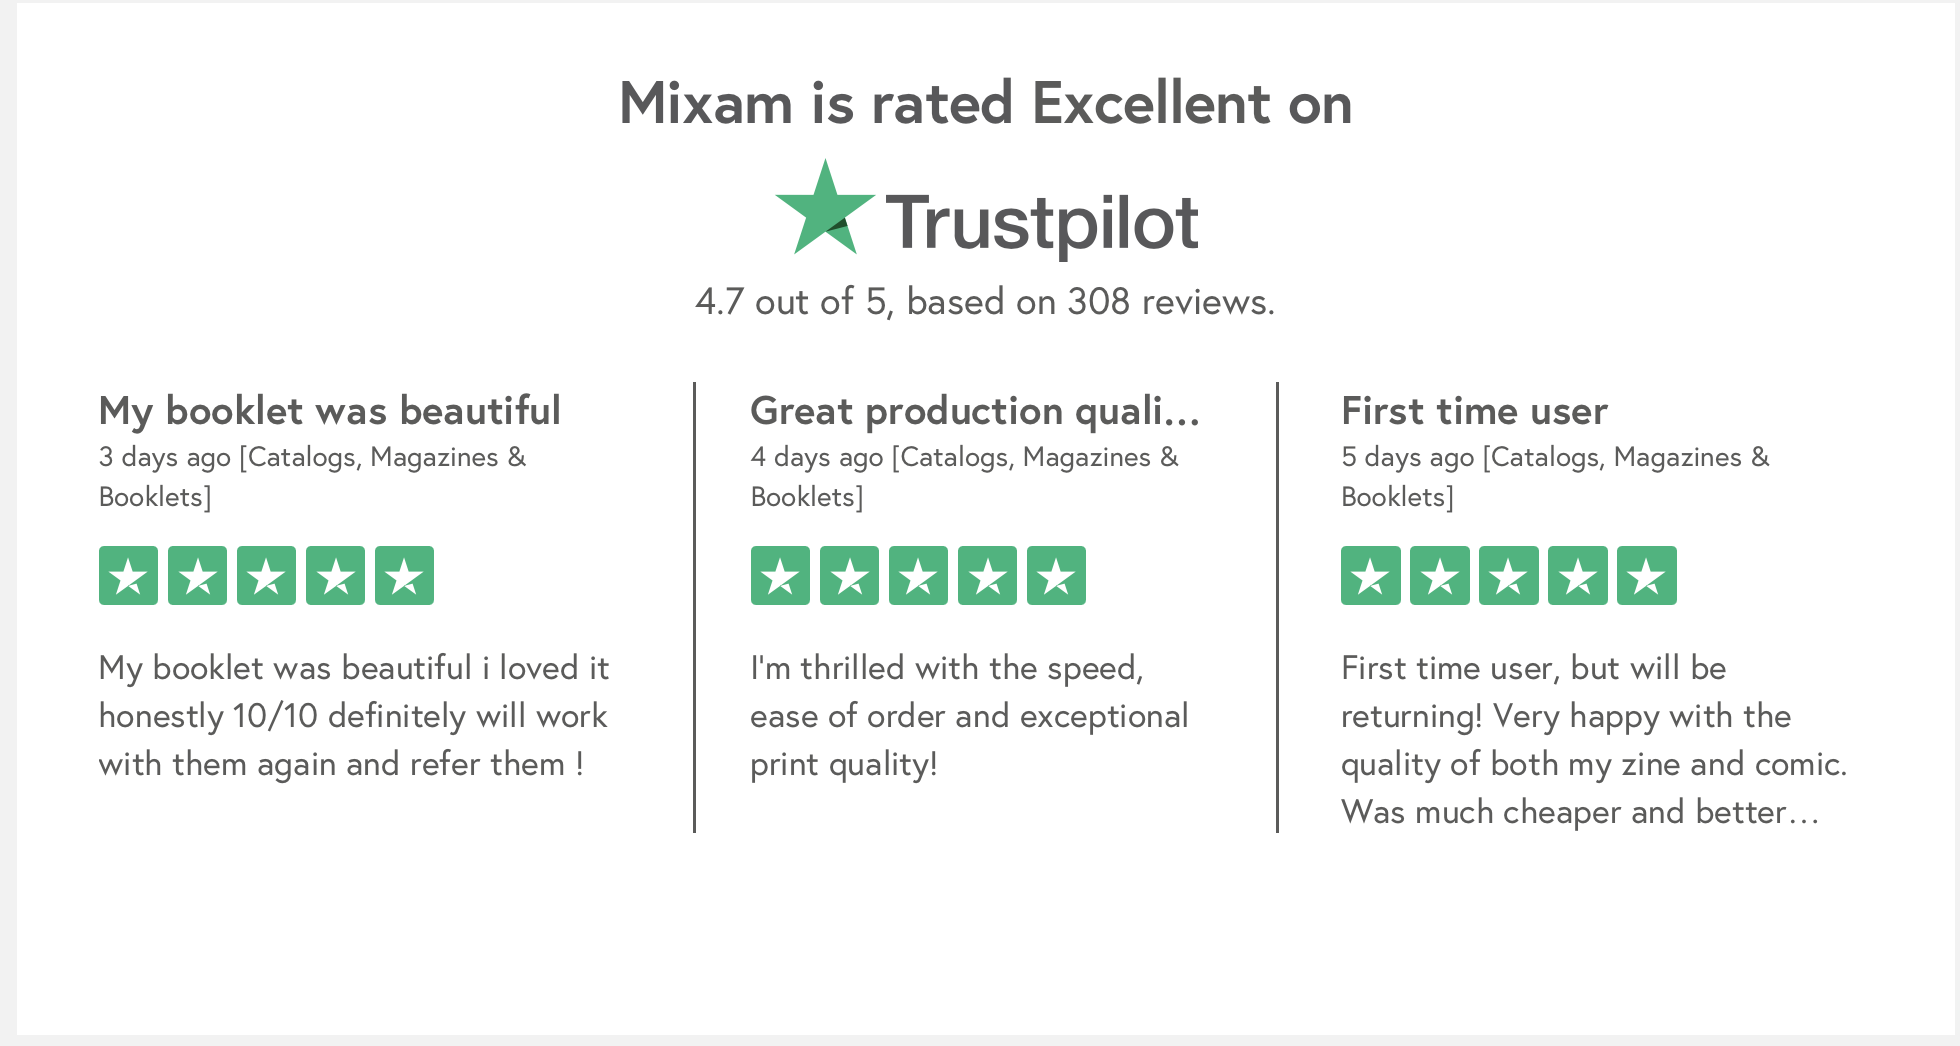 Mixam Trustpilot review increase conversion rate